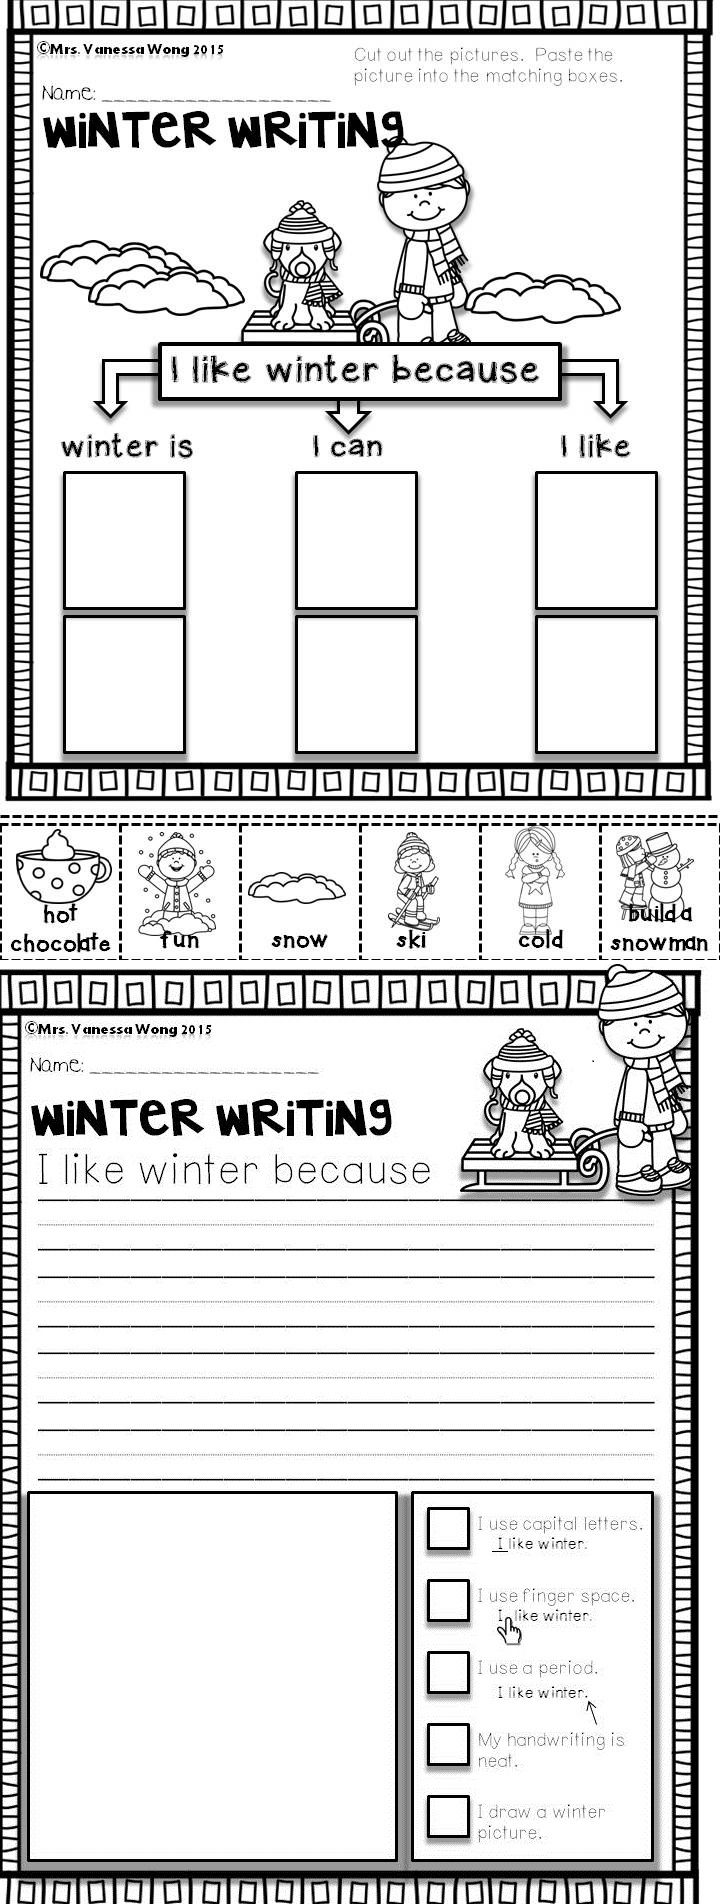 Winter Math And Literacy Worksheets And Activities For Kindergarten Spring Writing Kindergarten Writing Teaching Writing Kindergarten spring writing worksheets